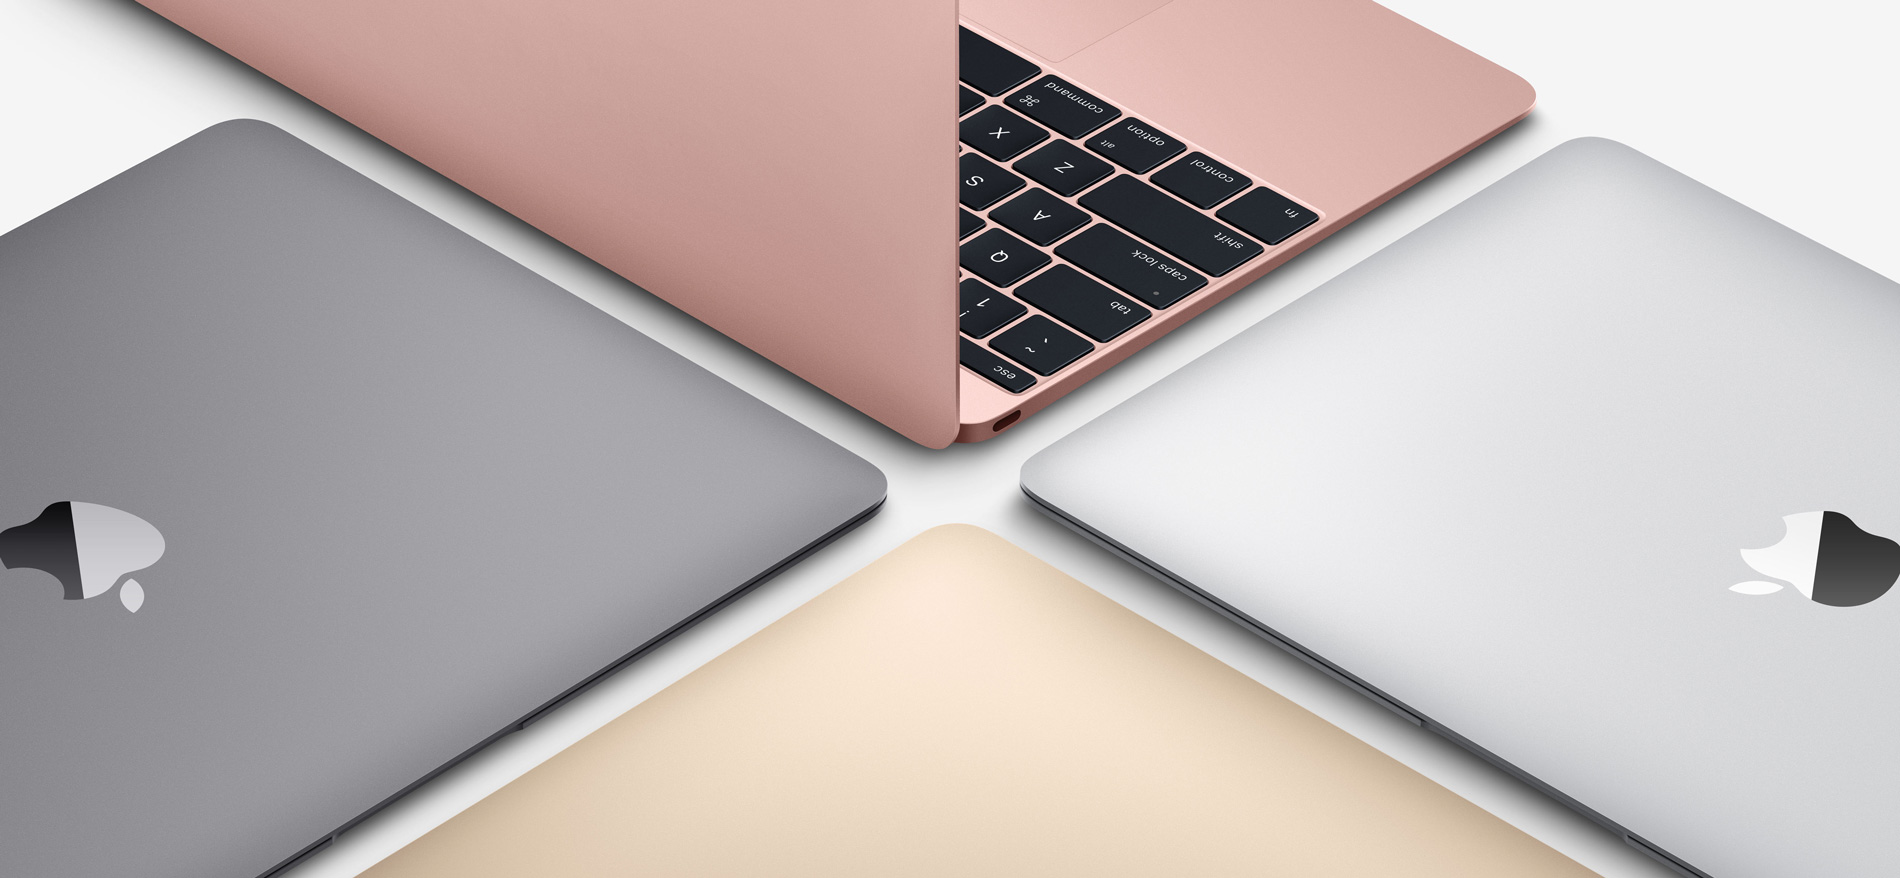 Macbook 12 Inch Pricing Comparison And Offers Mac Prices Australia